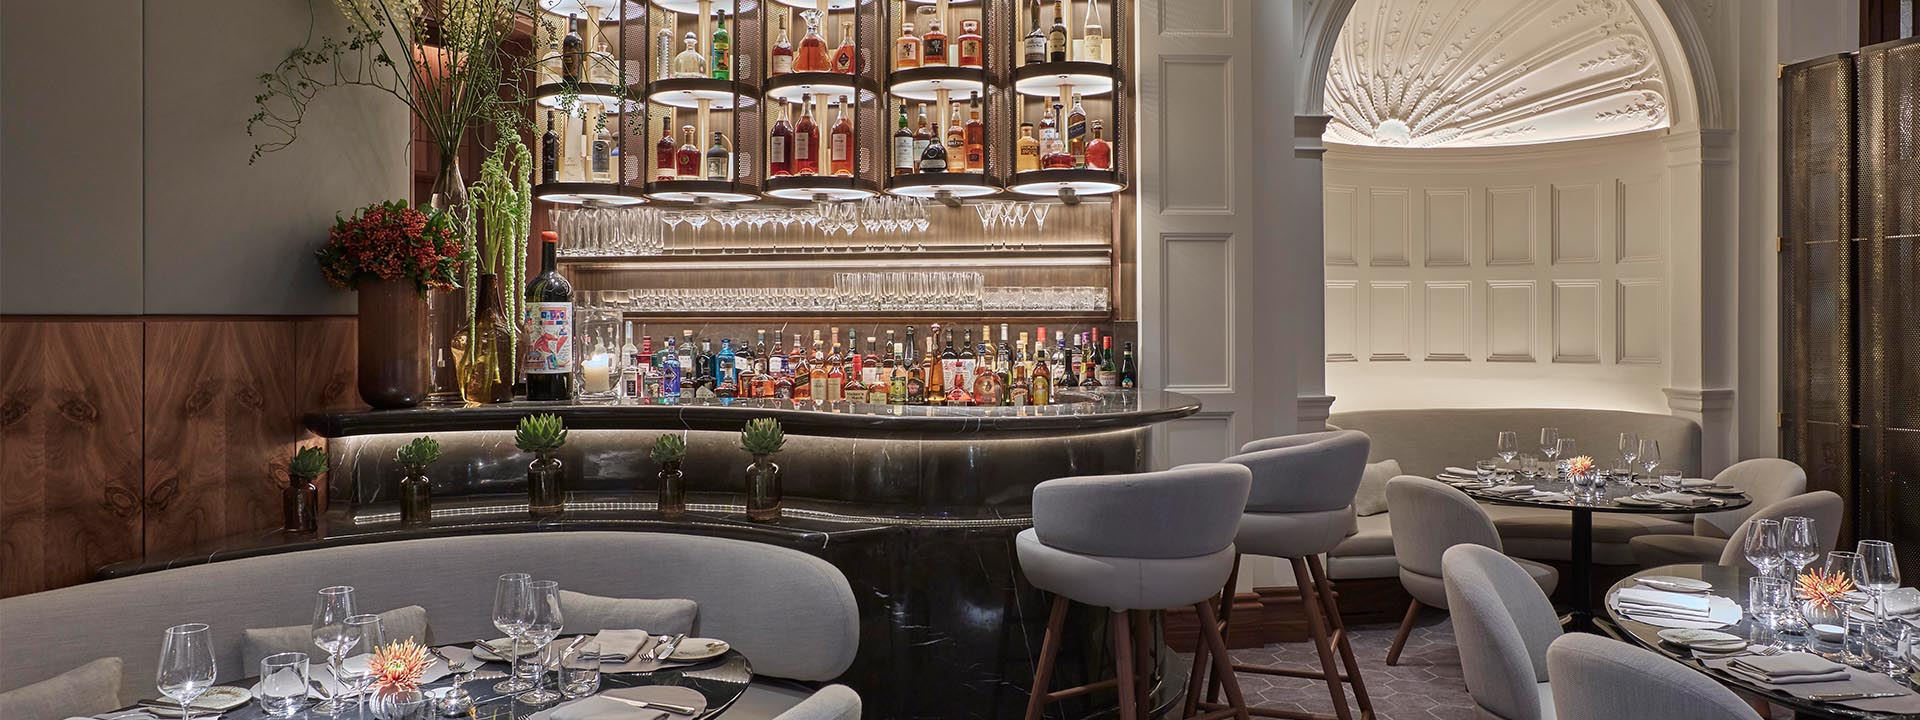 Interior of Jean-Georges at The Connaught in Mayfair